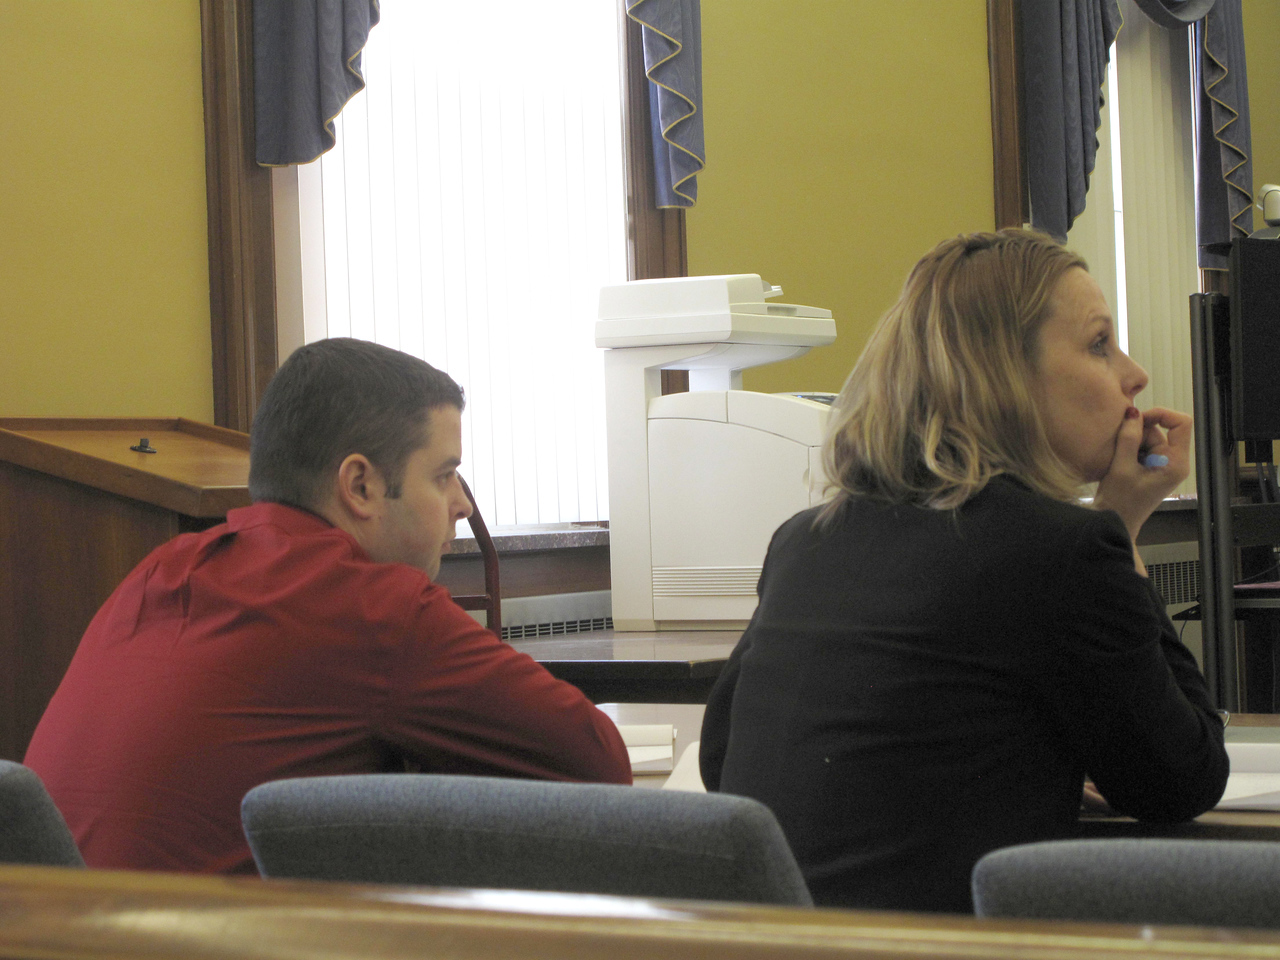 """ELIZABETH DOBBINS / GAZETTE Defendant James """"Jimmy"""" Tench listens to testimony with his lawyer Rhonda Kotnik during the murder trial of Tench's mother Mary on Monday in Medina County Common Pleas Judge Joyce V. Kimbler's court."""